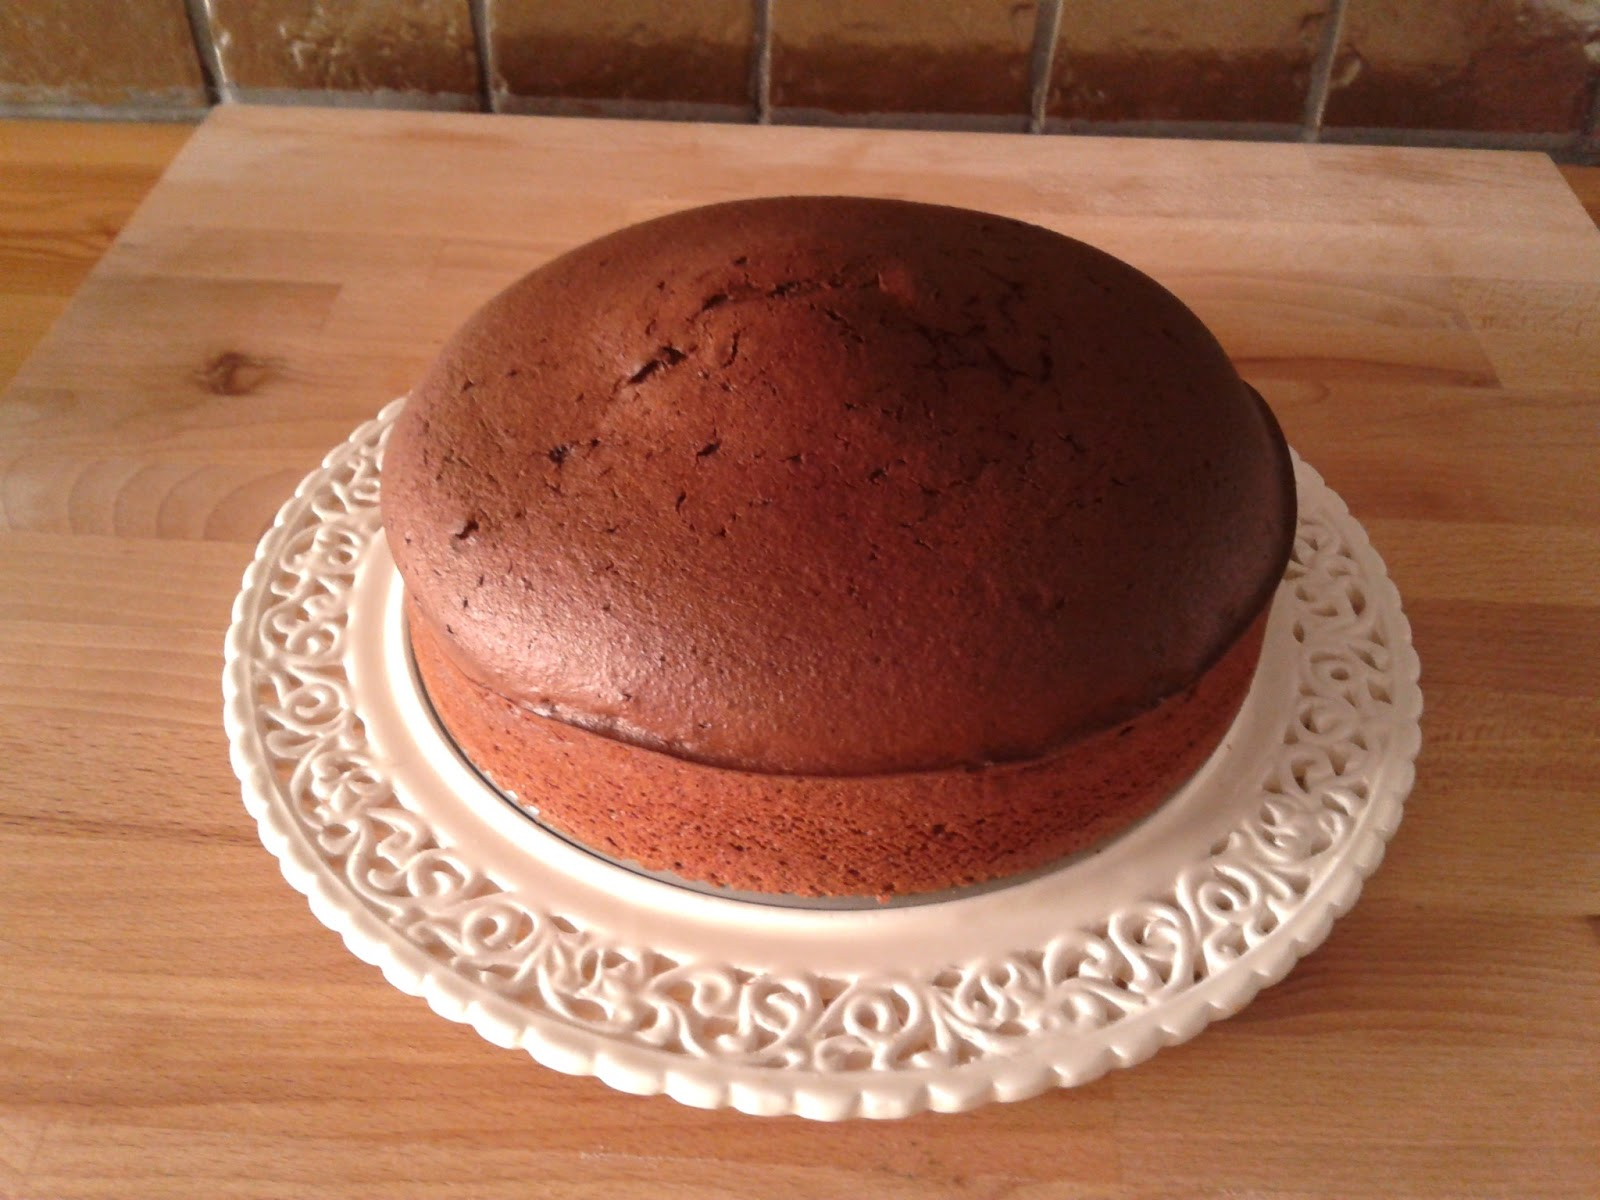 Thermomix Chocolate Almond Meal Cake